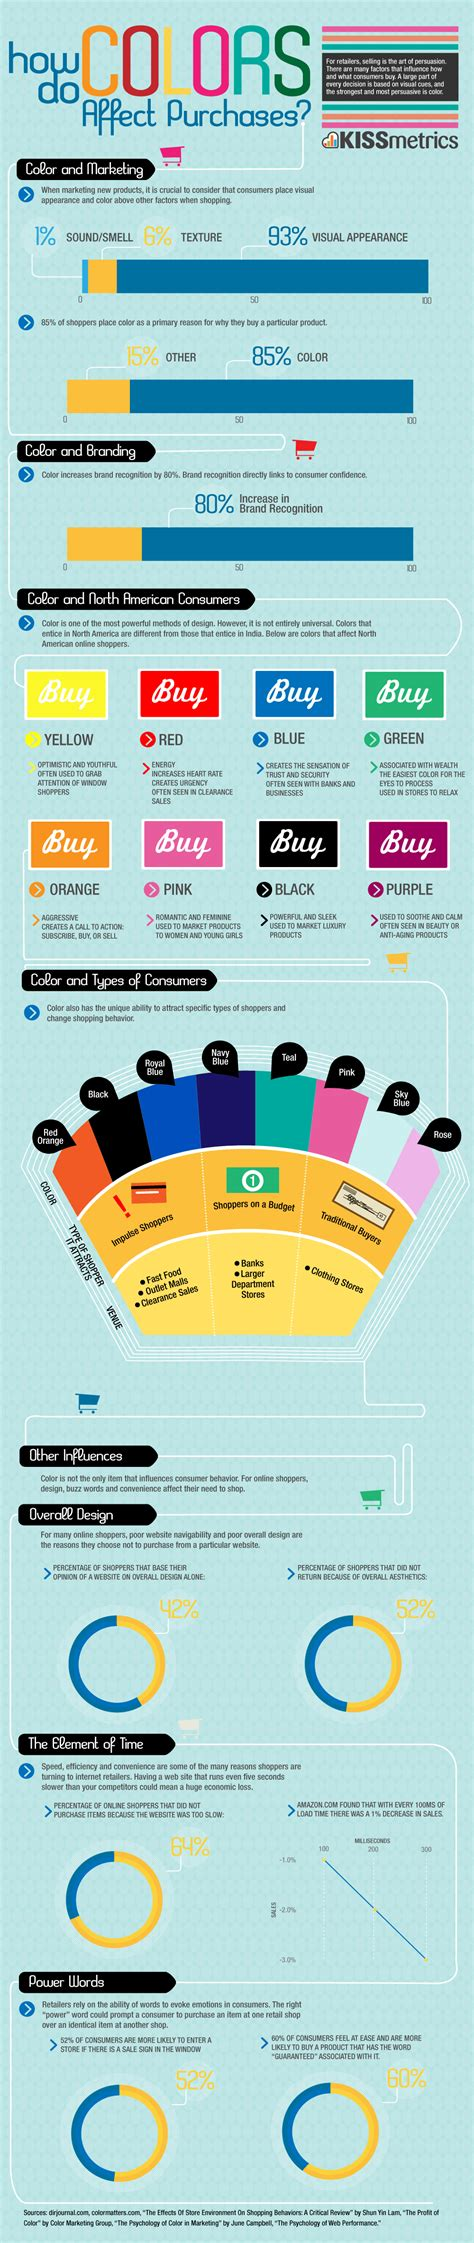 how colors affect you color psychology how do colors affect purchases infographic